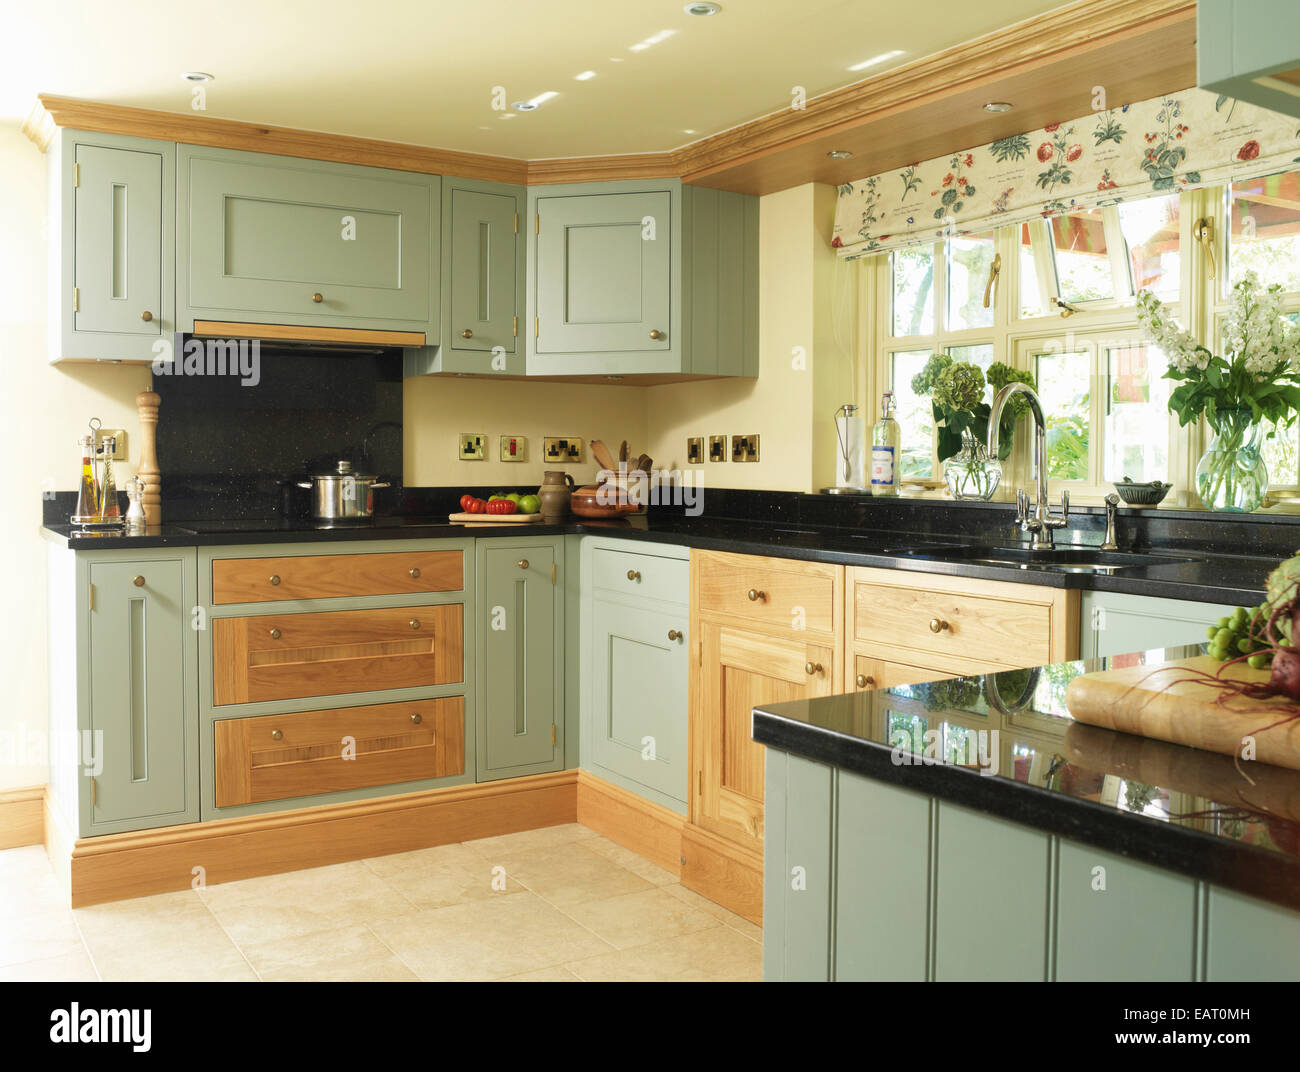 country style kitchen with green fitted units stock image - Country Style Kitchen